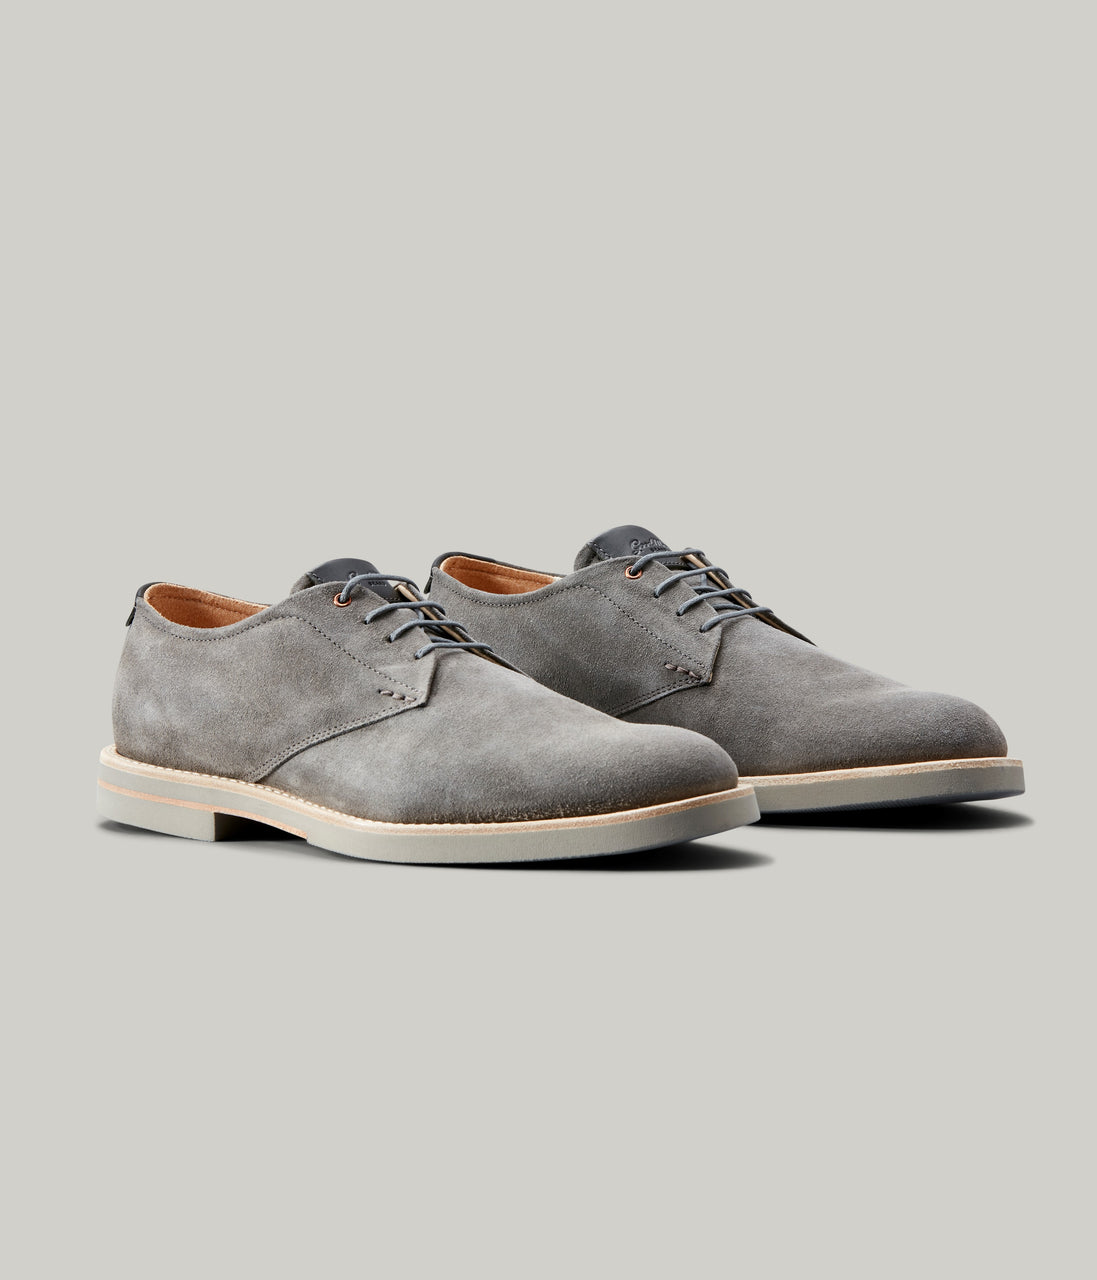 Modern Derby Shoe - Grey - Good Man Brand - Modern Derby Shoe - Grey